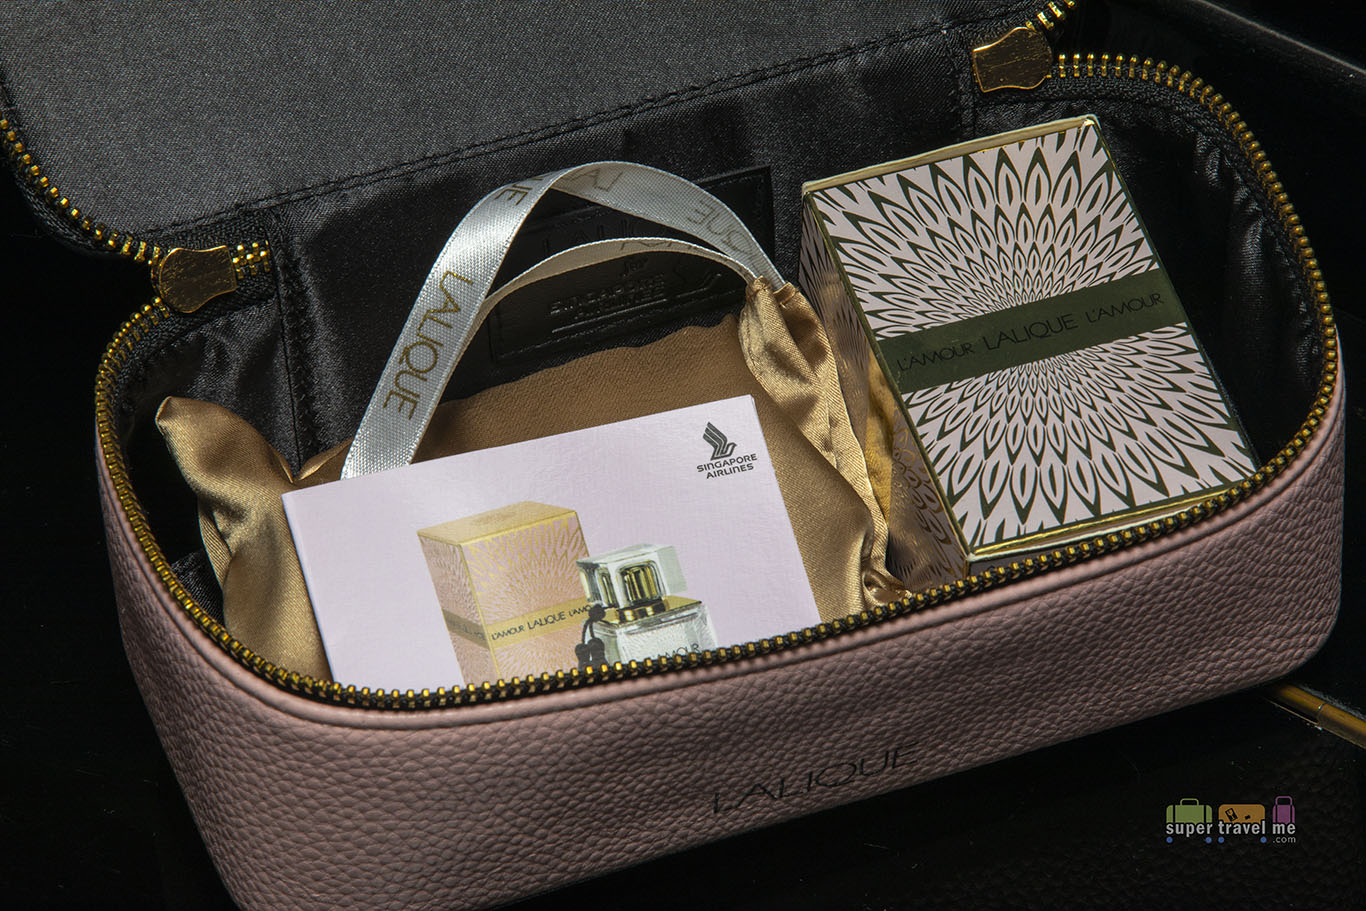 Singapore Airlines First Class Amenity Kit (Lalique Ladies - Open) 4442